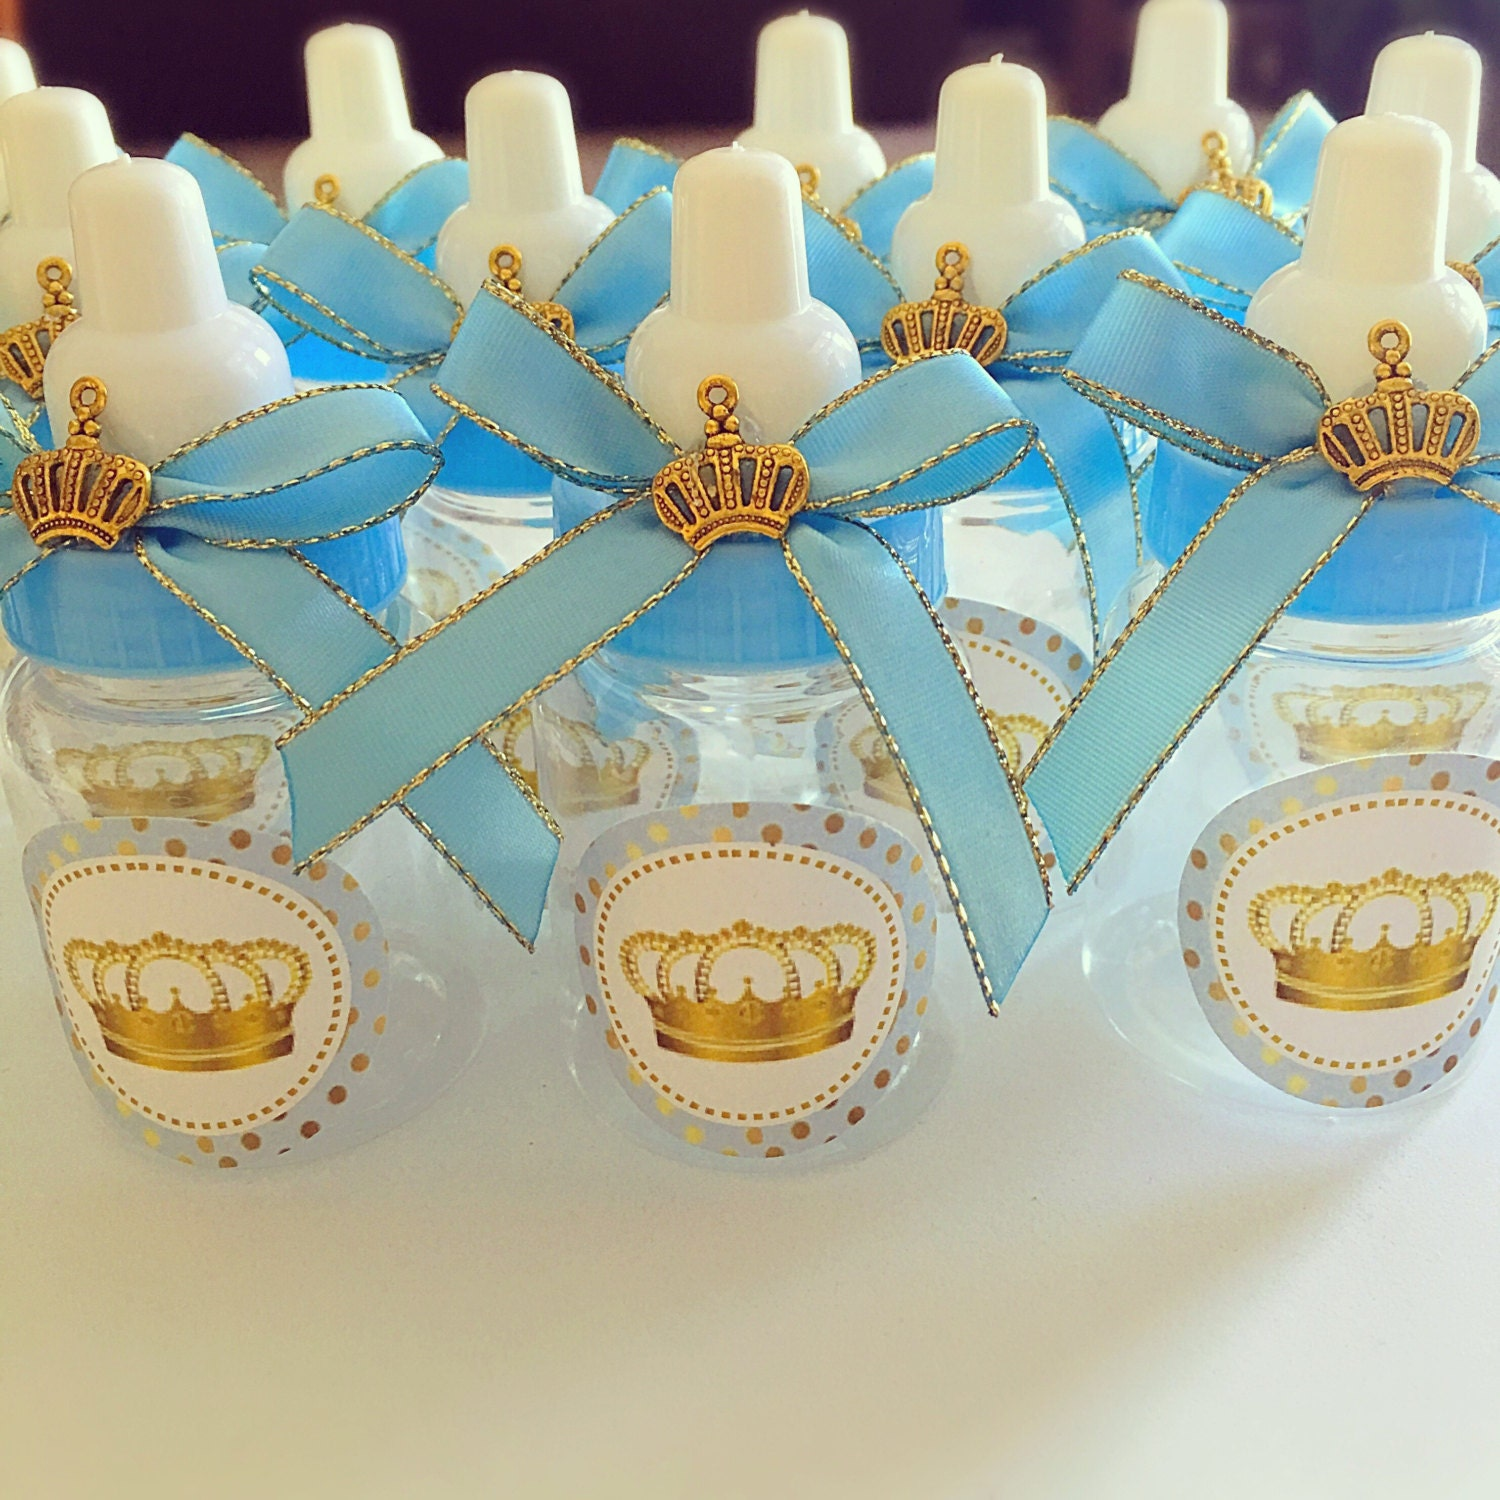 Prince Baby Shower Favors: 12 Little Prince Baby Shower Favors Little Prince Blue And